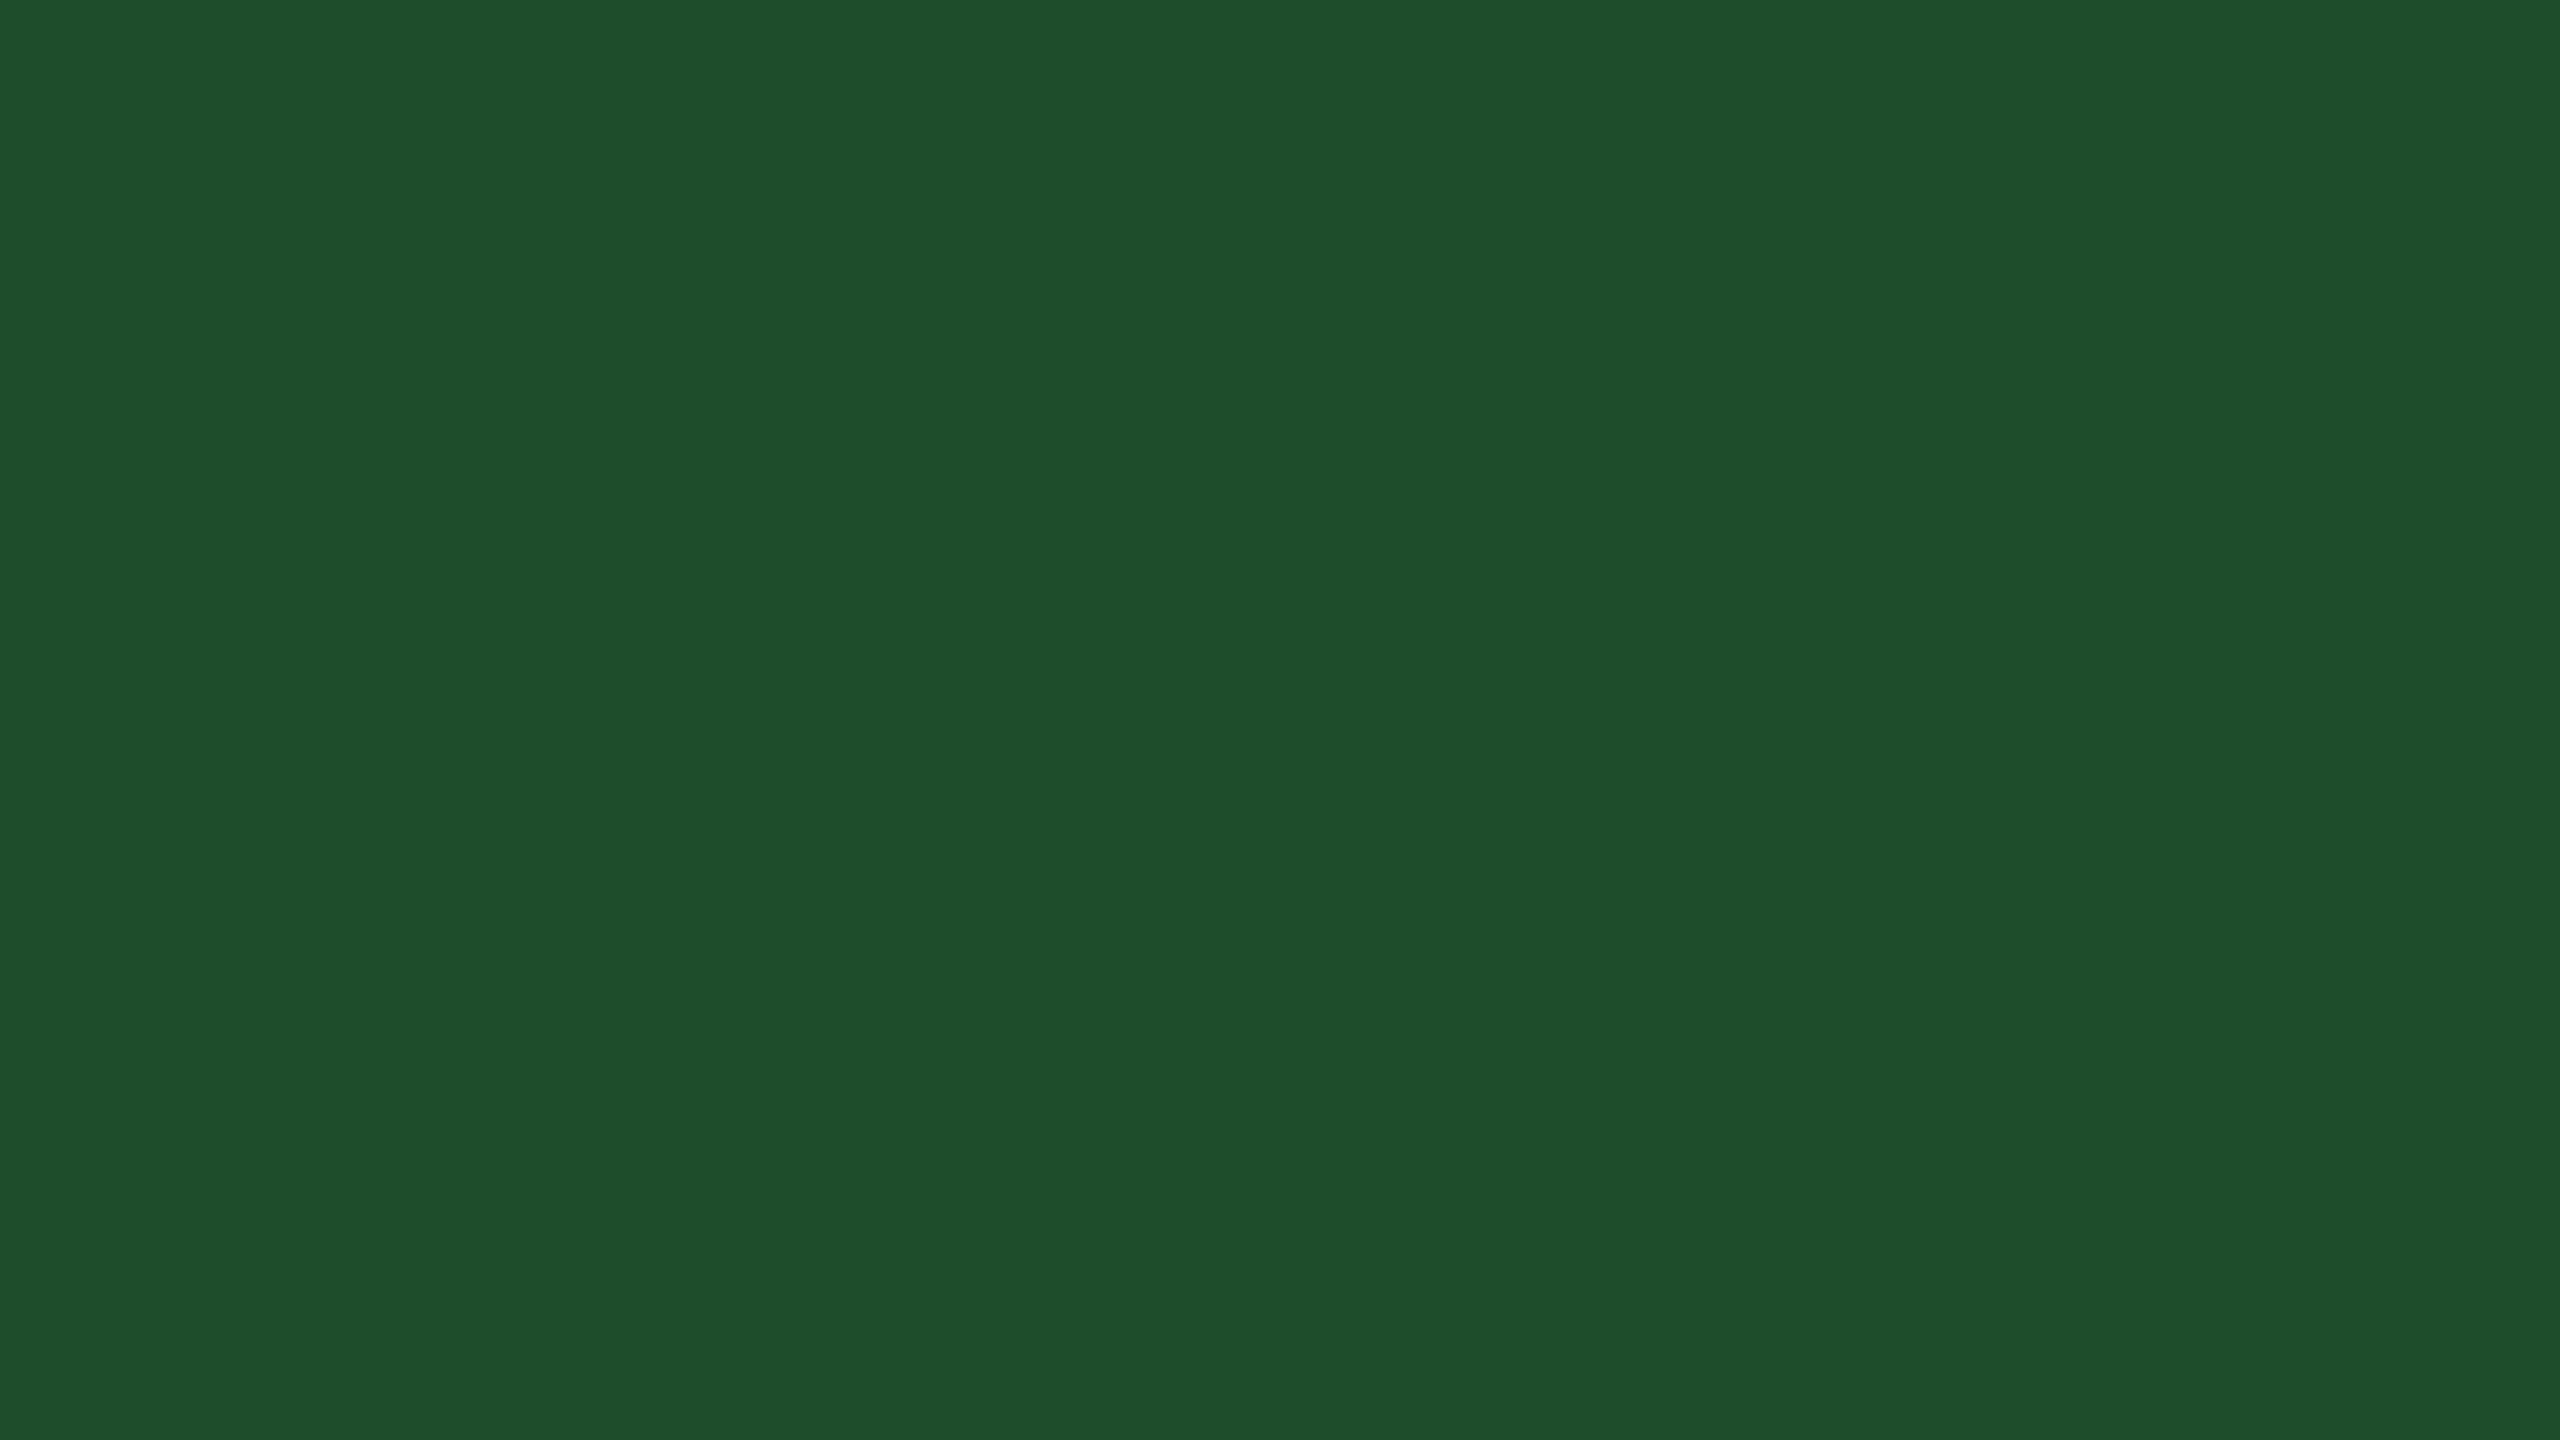 2560x1440 Cal Poly Green Solid Color Background